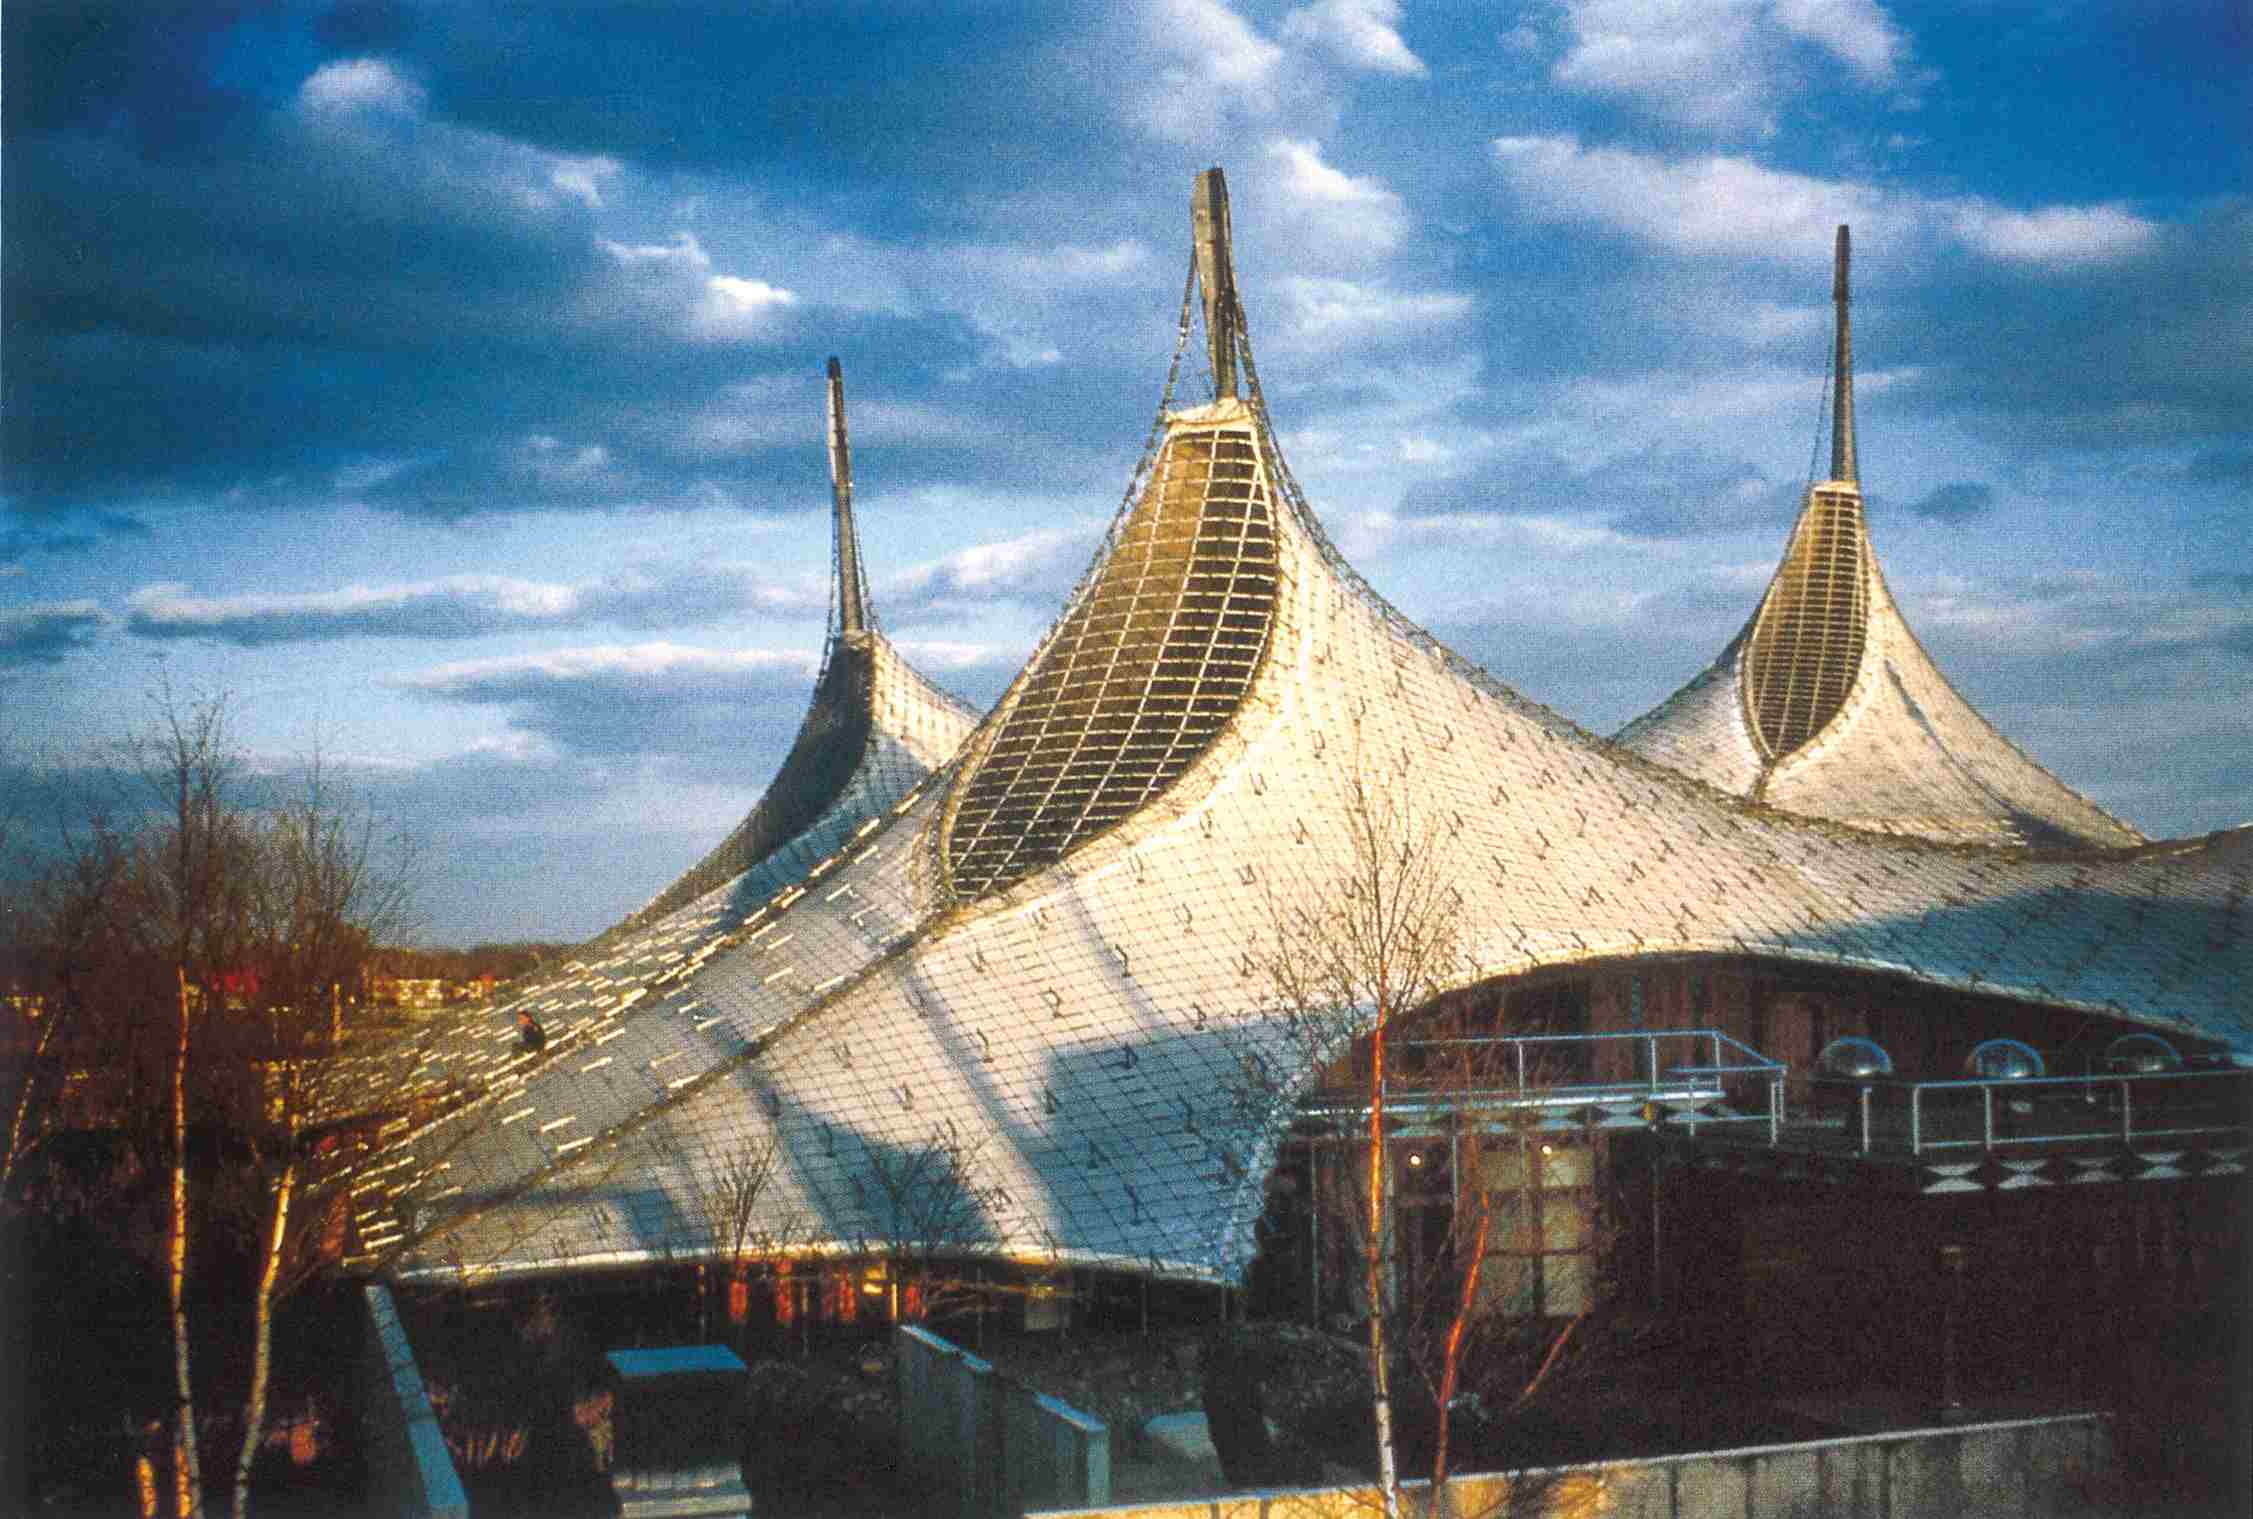 The German Pavilion at Expo 67, 1967, Montreal, Canada